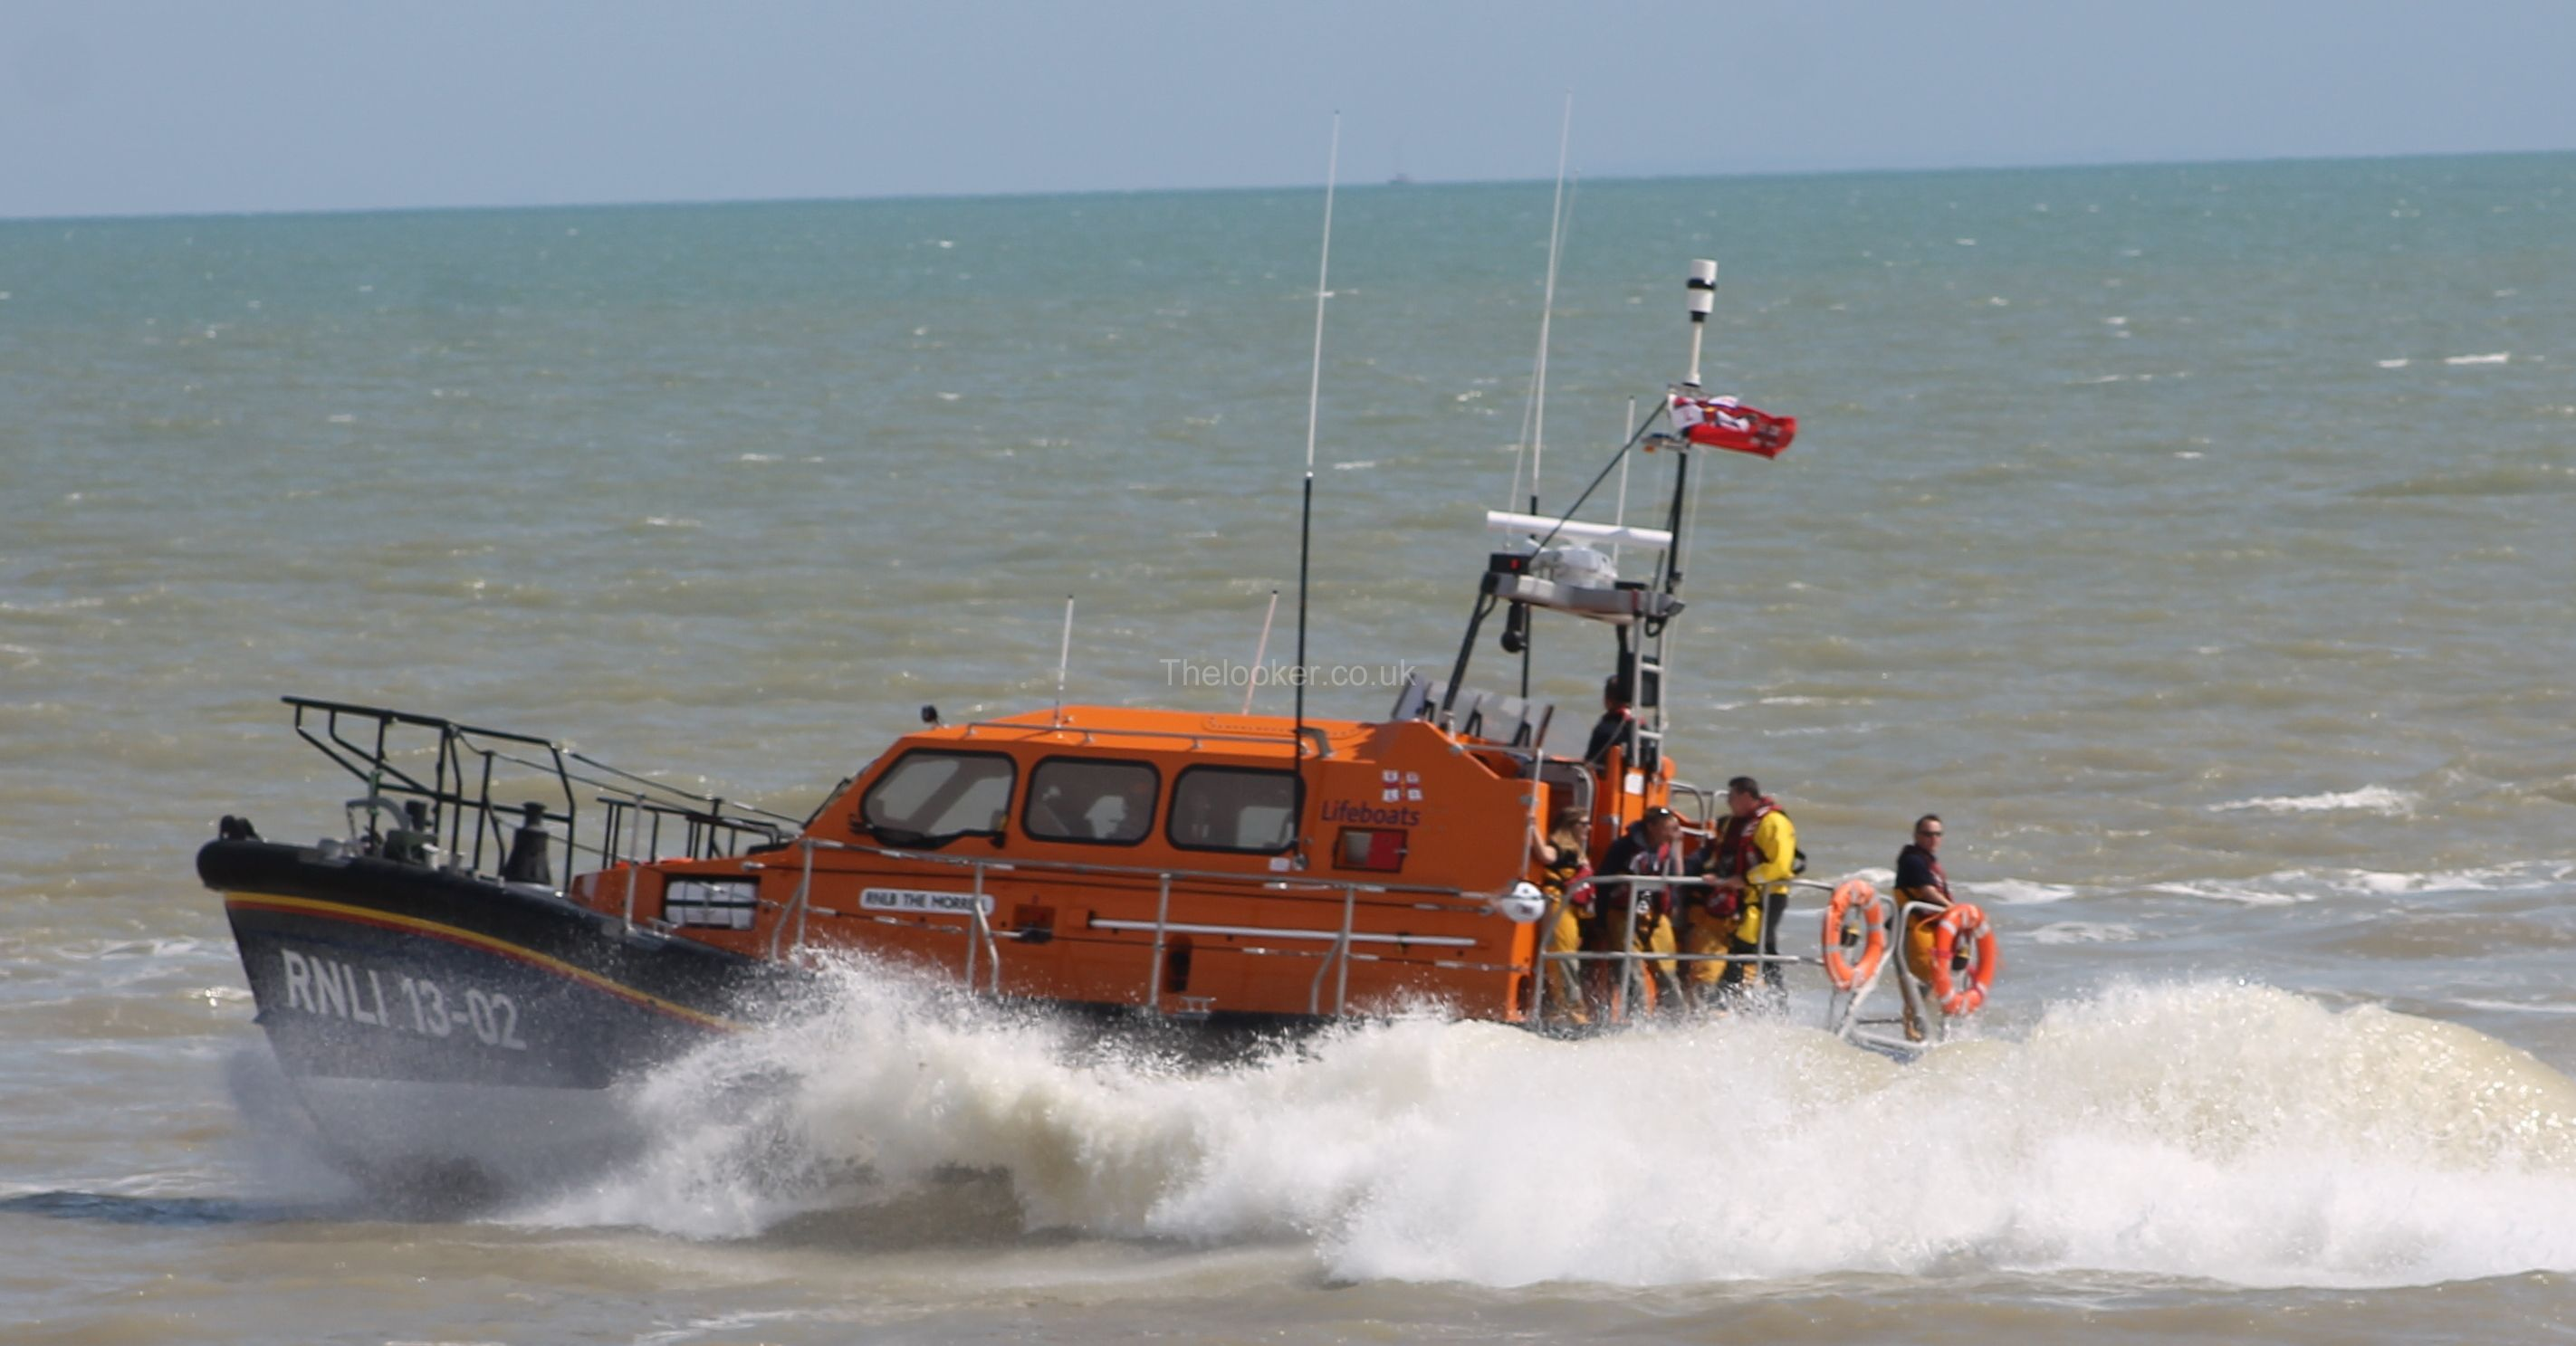 Lifeboat comes to the rescue of Stricken Motor Cruiser